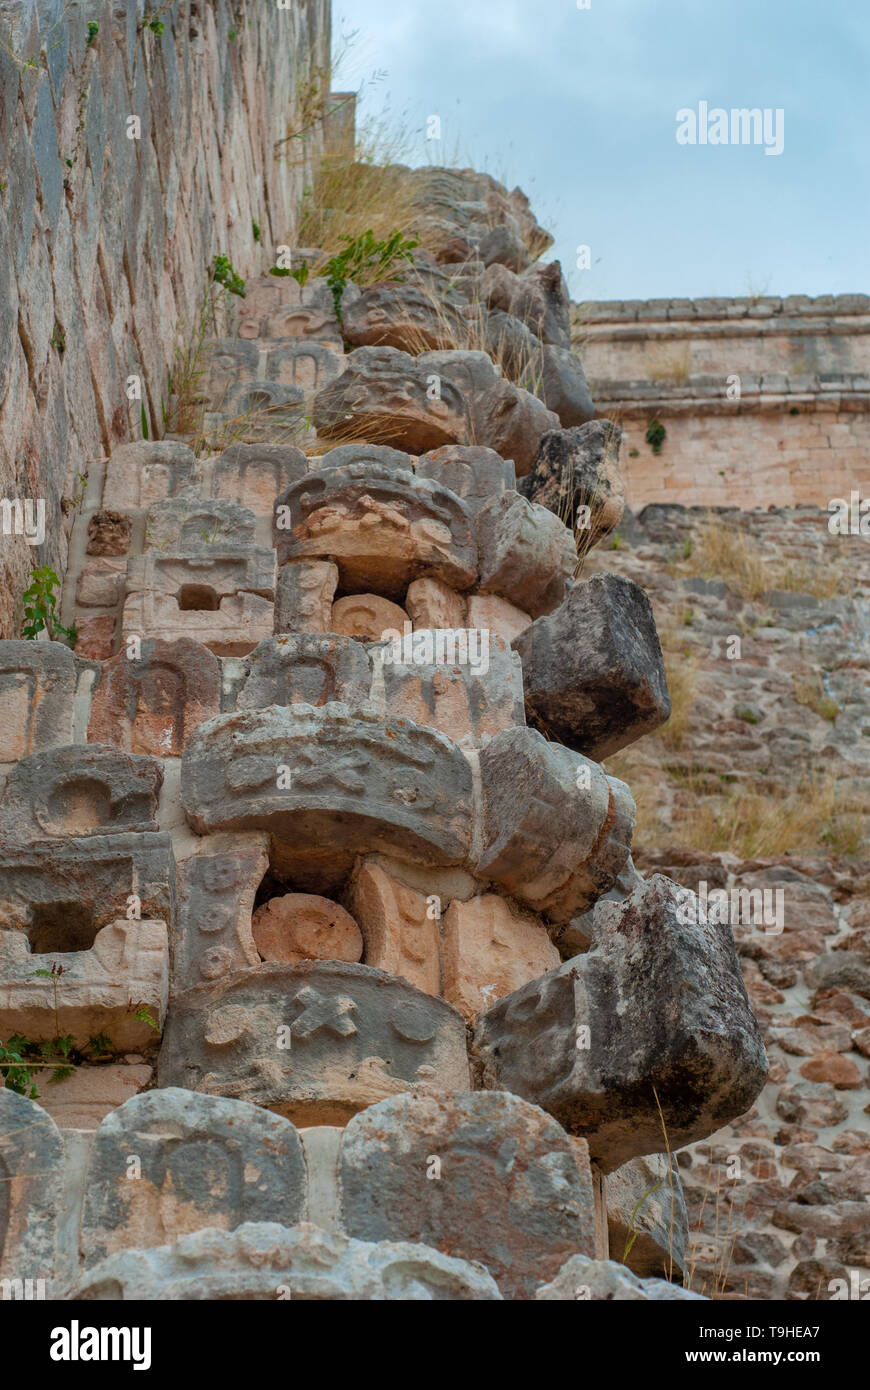 Details of the Mayan stone decorations, in the archaeological area of Ek Balam, on the Yucatan peninsula - Stock Image